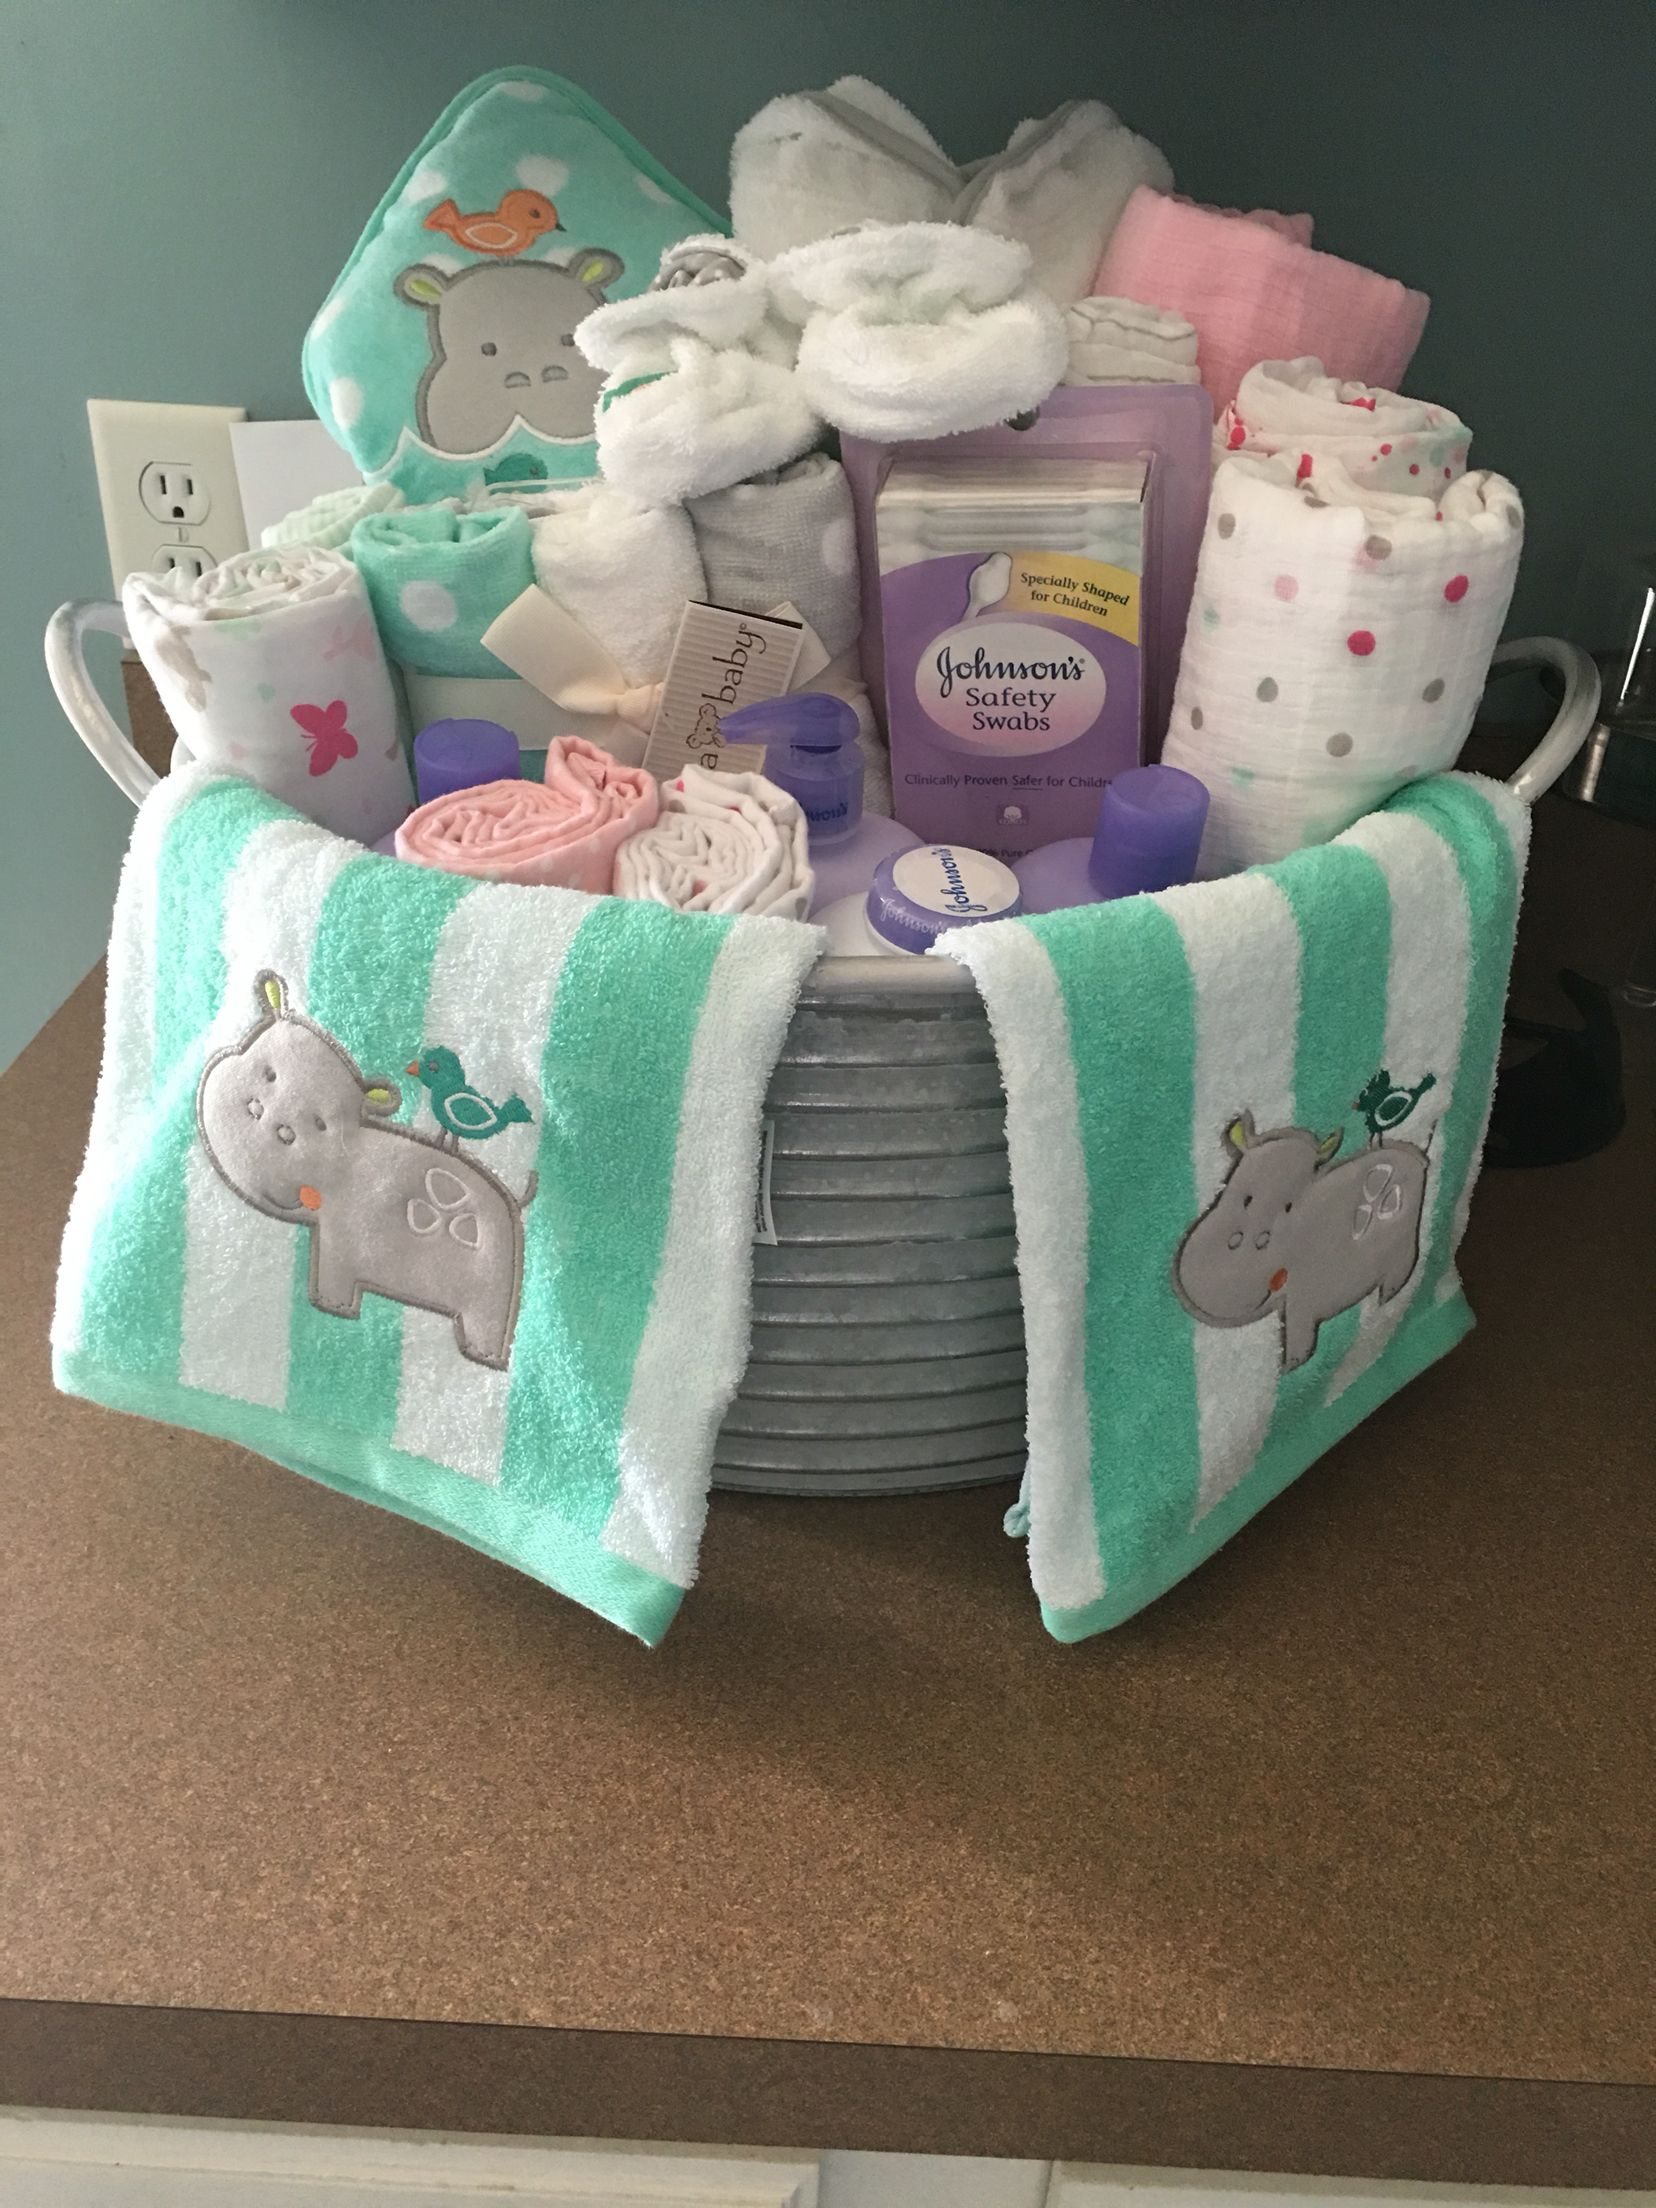 Baby Laundry Basket Gift Baby Shower Present I Made Galvanized Bucket With Baby